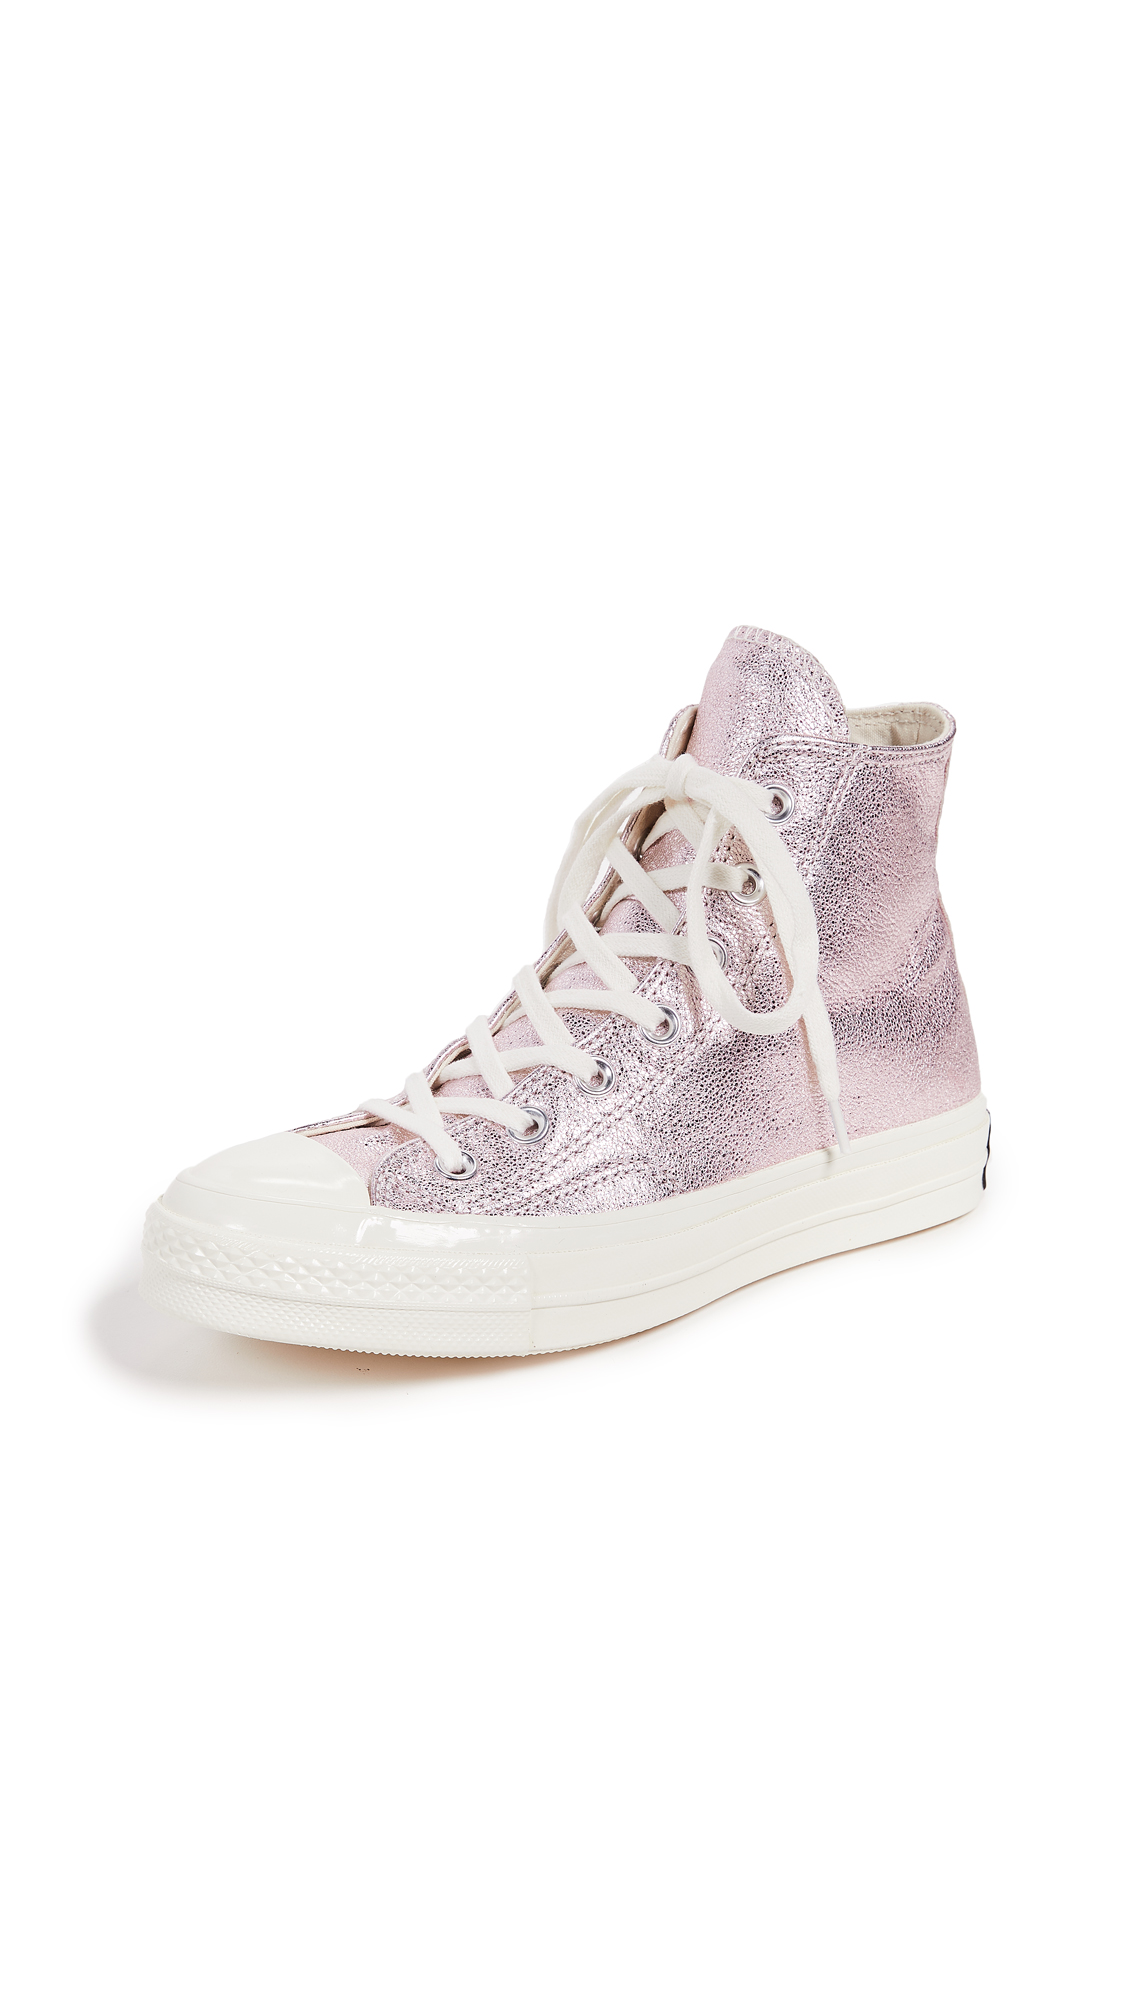 Converse Chuck 70s High Top Heavy Metal Sneakers In Rust Pink